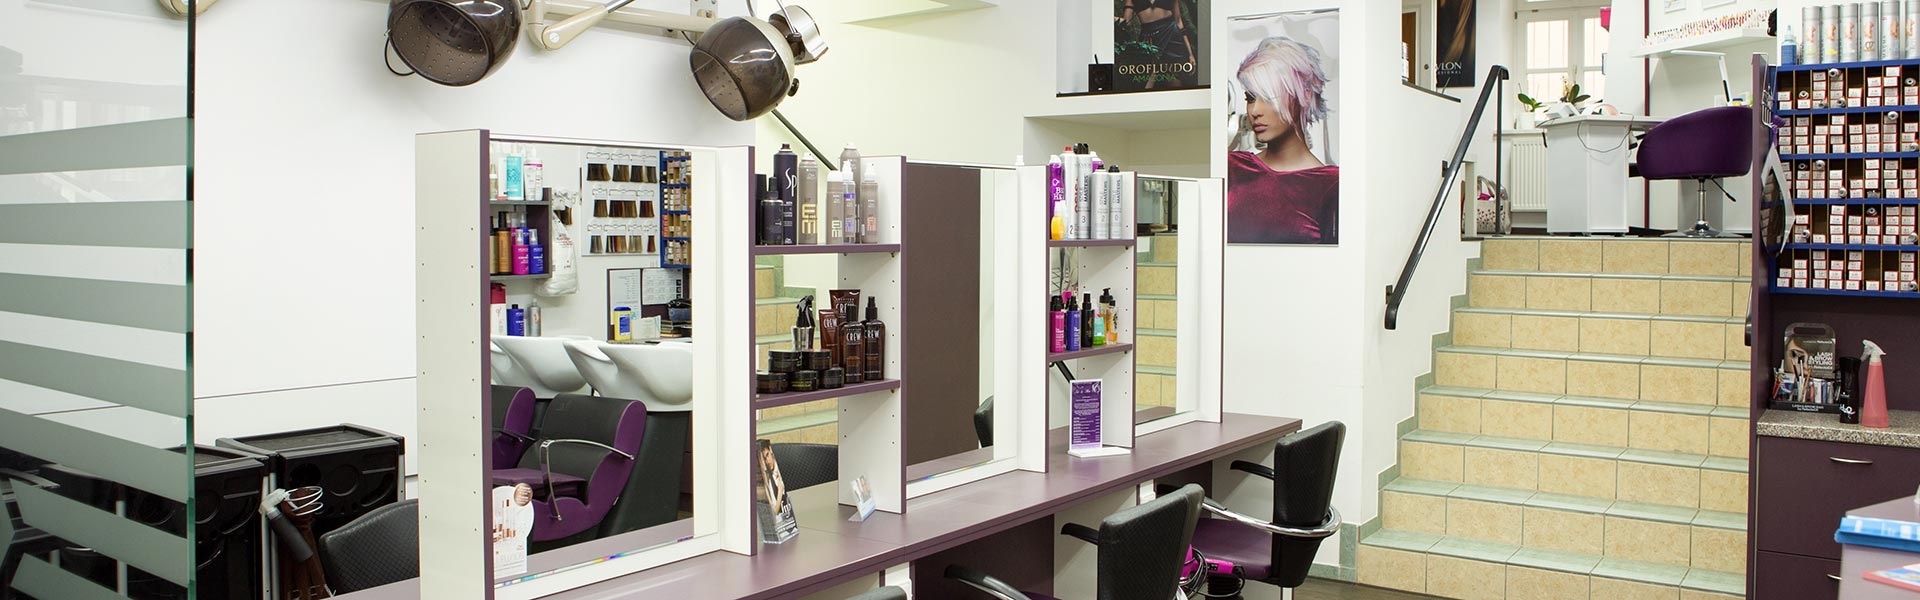 Friseur und Kosmetikstudio in Bad Kissingen